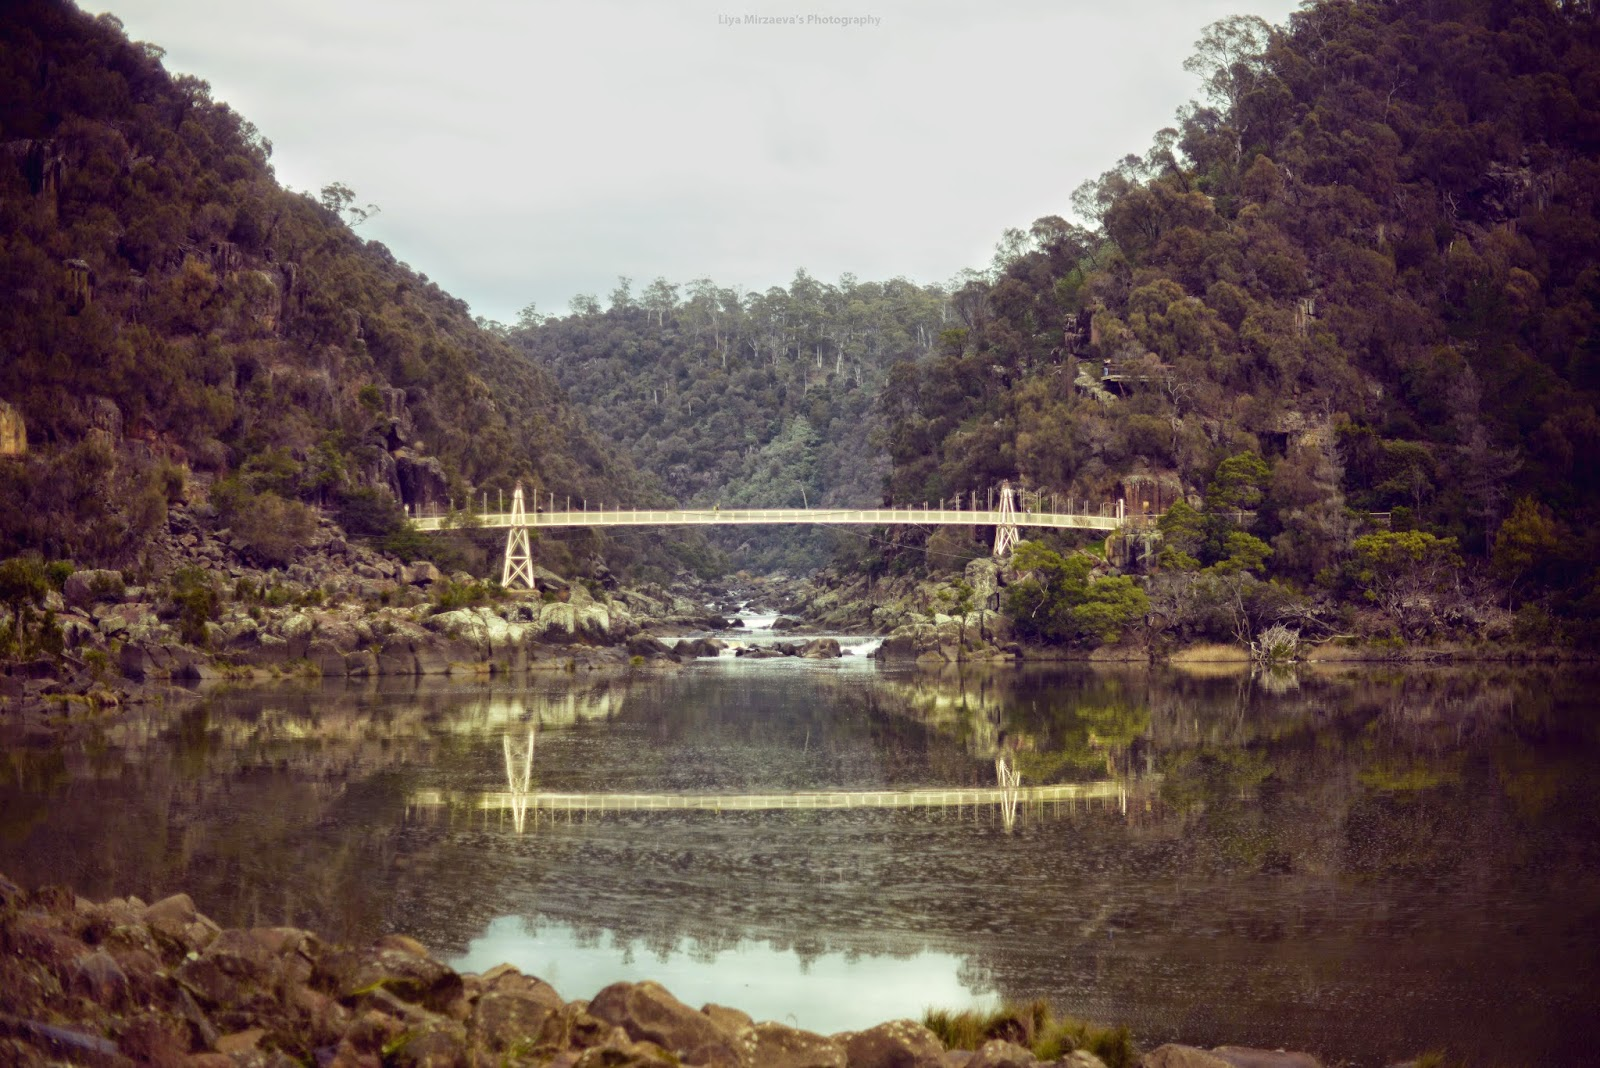 LiyaMirzaeva Liya Mirzaeva Landscape photography art Australia Sydney Launceston CataractGorge Cataract Gorge Park green cold winter stormy rain rainy peacocks girls friends lifestyle beautiful travel journey roadtrip everyday